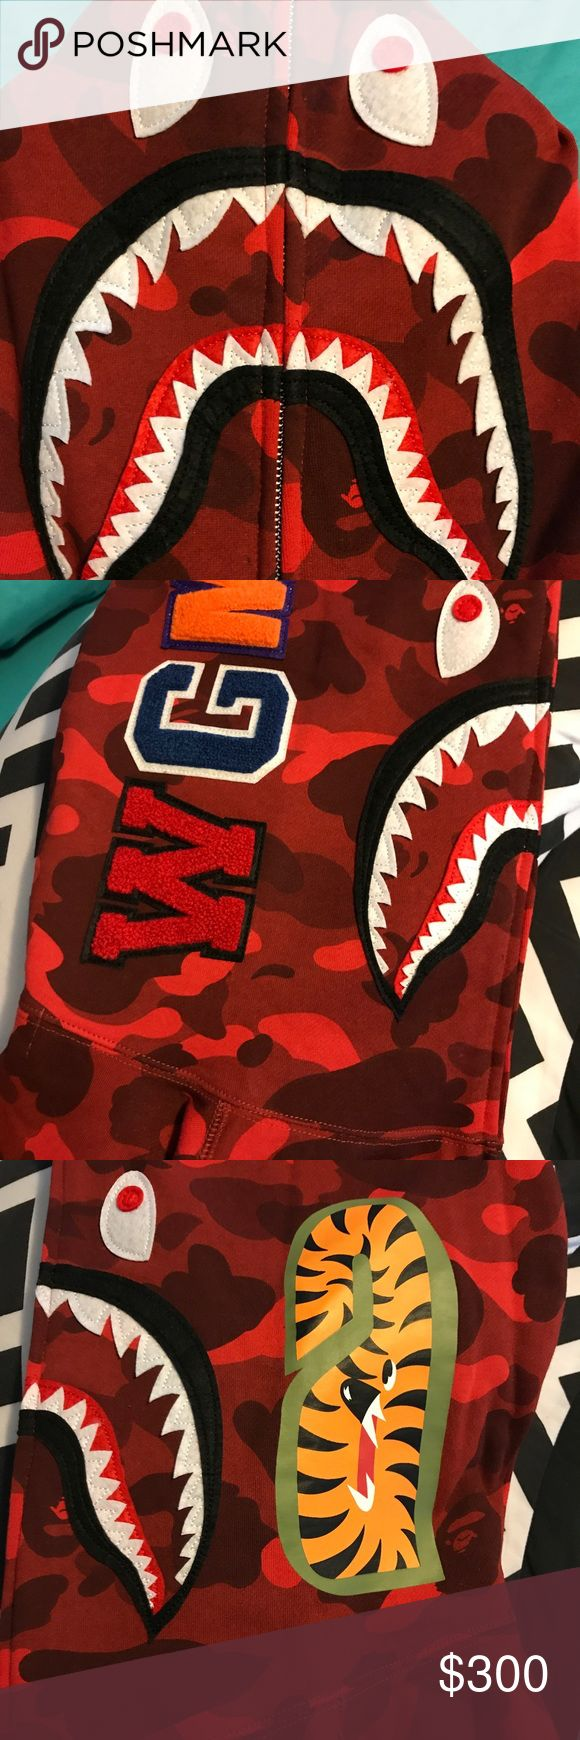 BAPE Shark Hoodie Red Camo Picture are taken from item itself. Serious Buyers Only! Bape Jackets & Coats